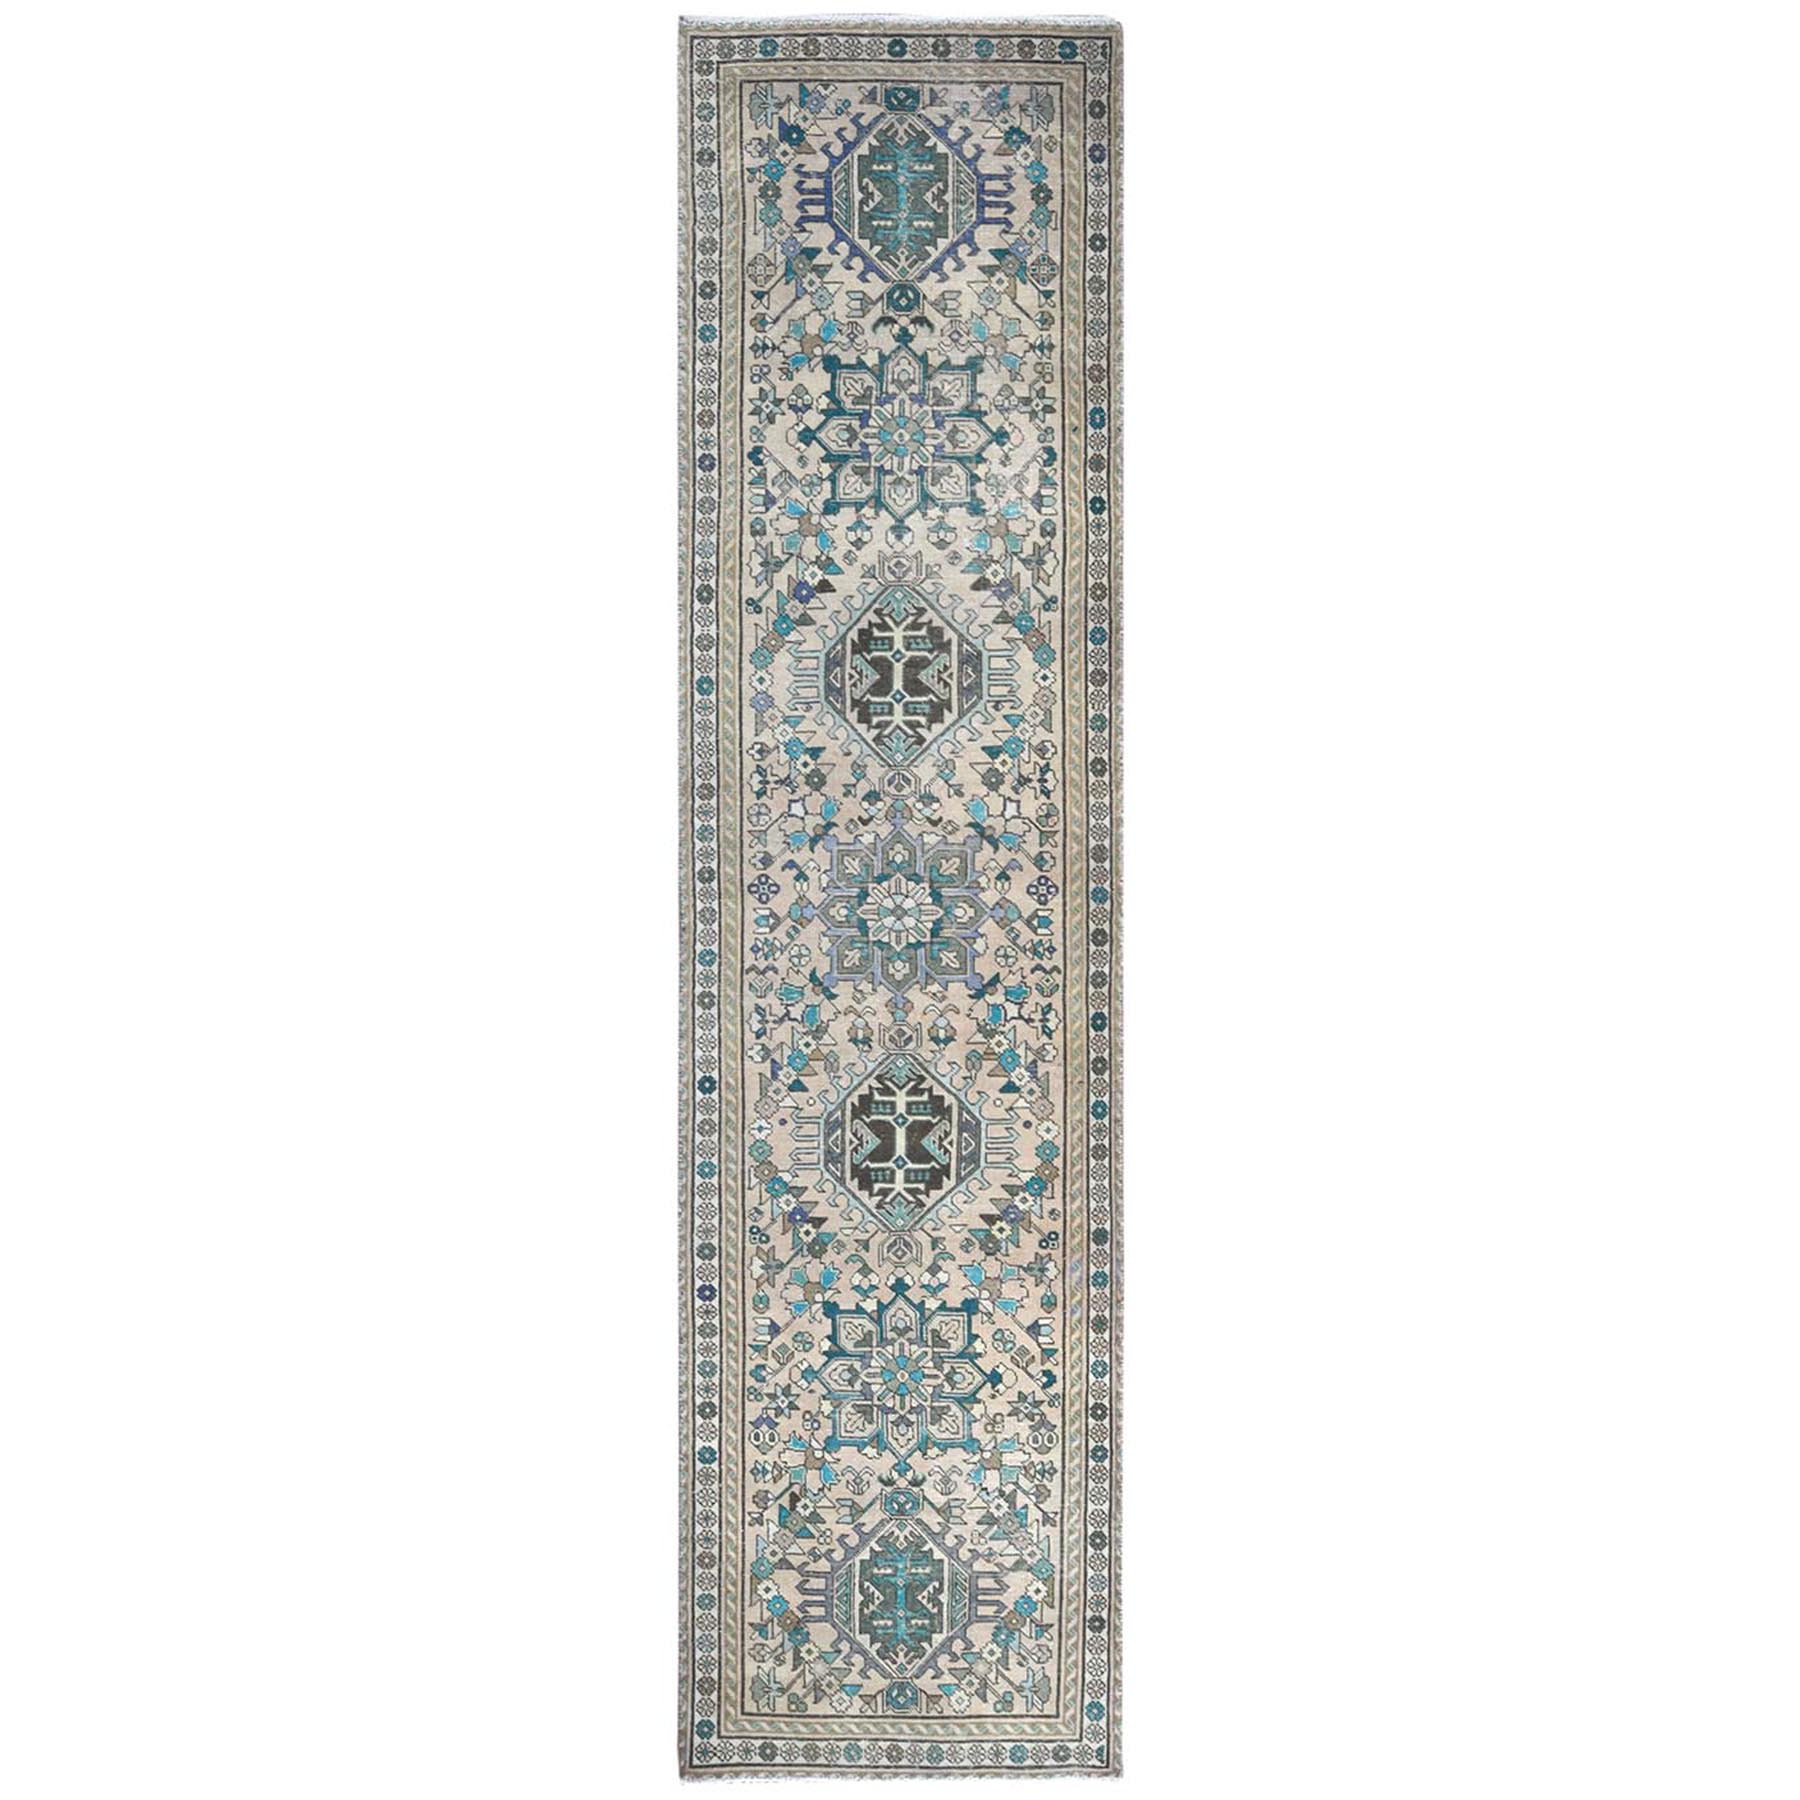 Fetneh Collection And Vintage Overdyed Collection Hand Knotted Beige Rug No: 1121862